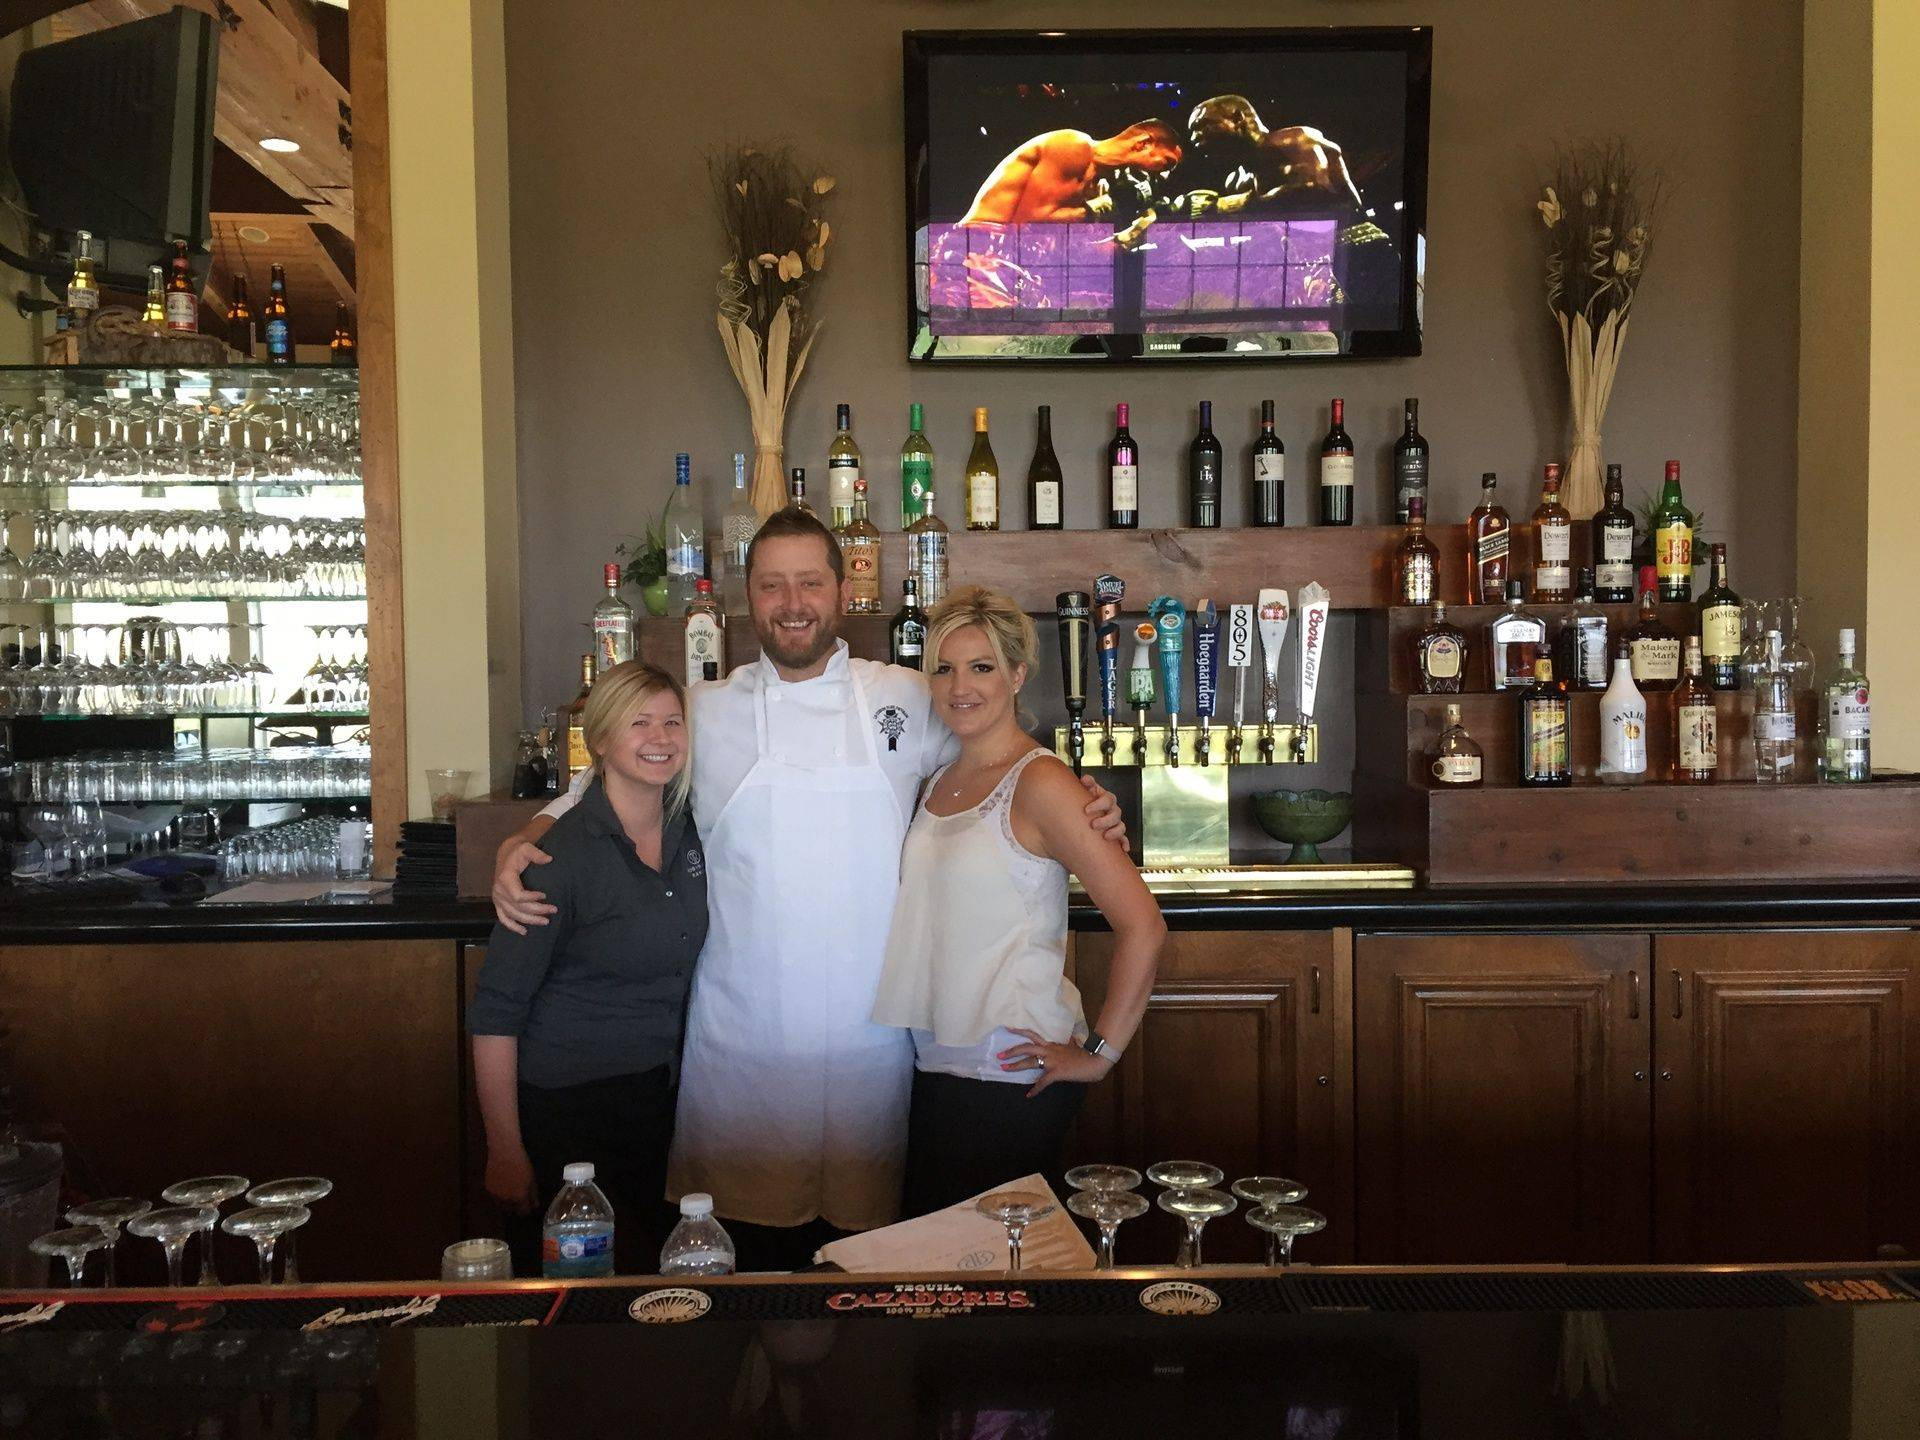 sycamore bar & grill staff pic